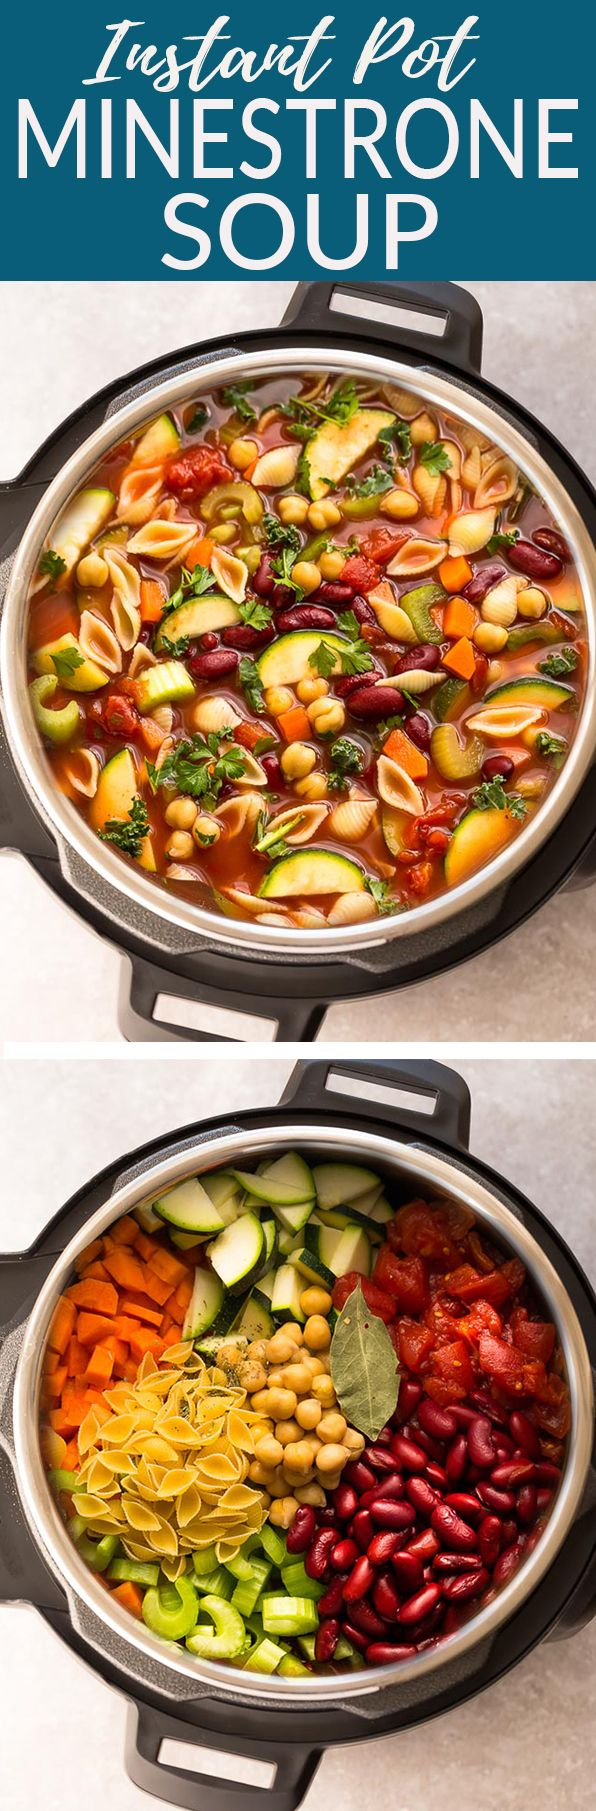 Instant Pot Homemade Minestrone Soup makes the perfect easy comforting meal. Best of all, it's an easy set and forget pressure cooker recipe and is so much healthier and better than Olive Garden's version! Made entirely in your slow cooker or the stovetop and SO delicious! #minestronesoup #soup #minestrone #vegetables #vegetarian #heart #comfortfood #soup #olivegarden #copycat #olivegardencopycat #instantpot #pressurecooker